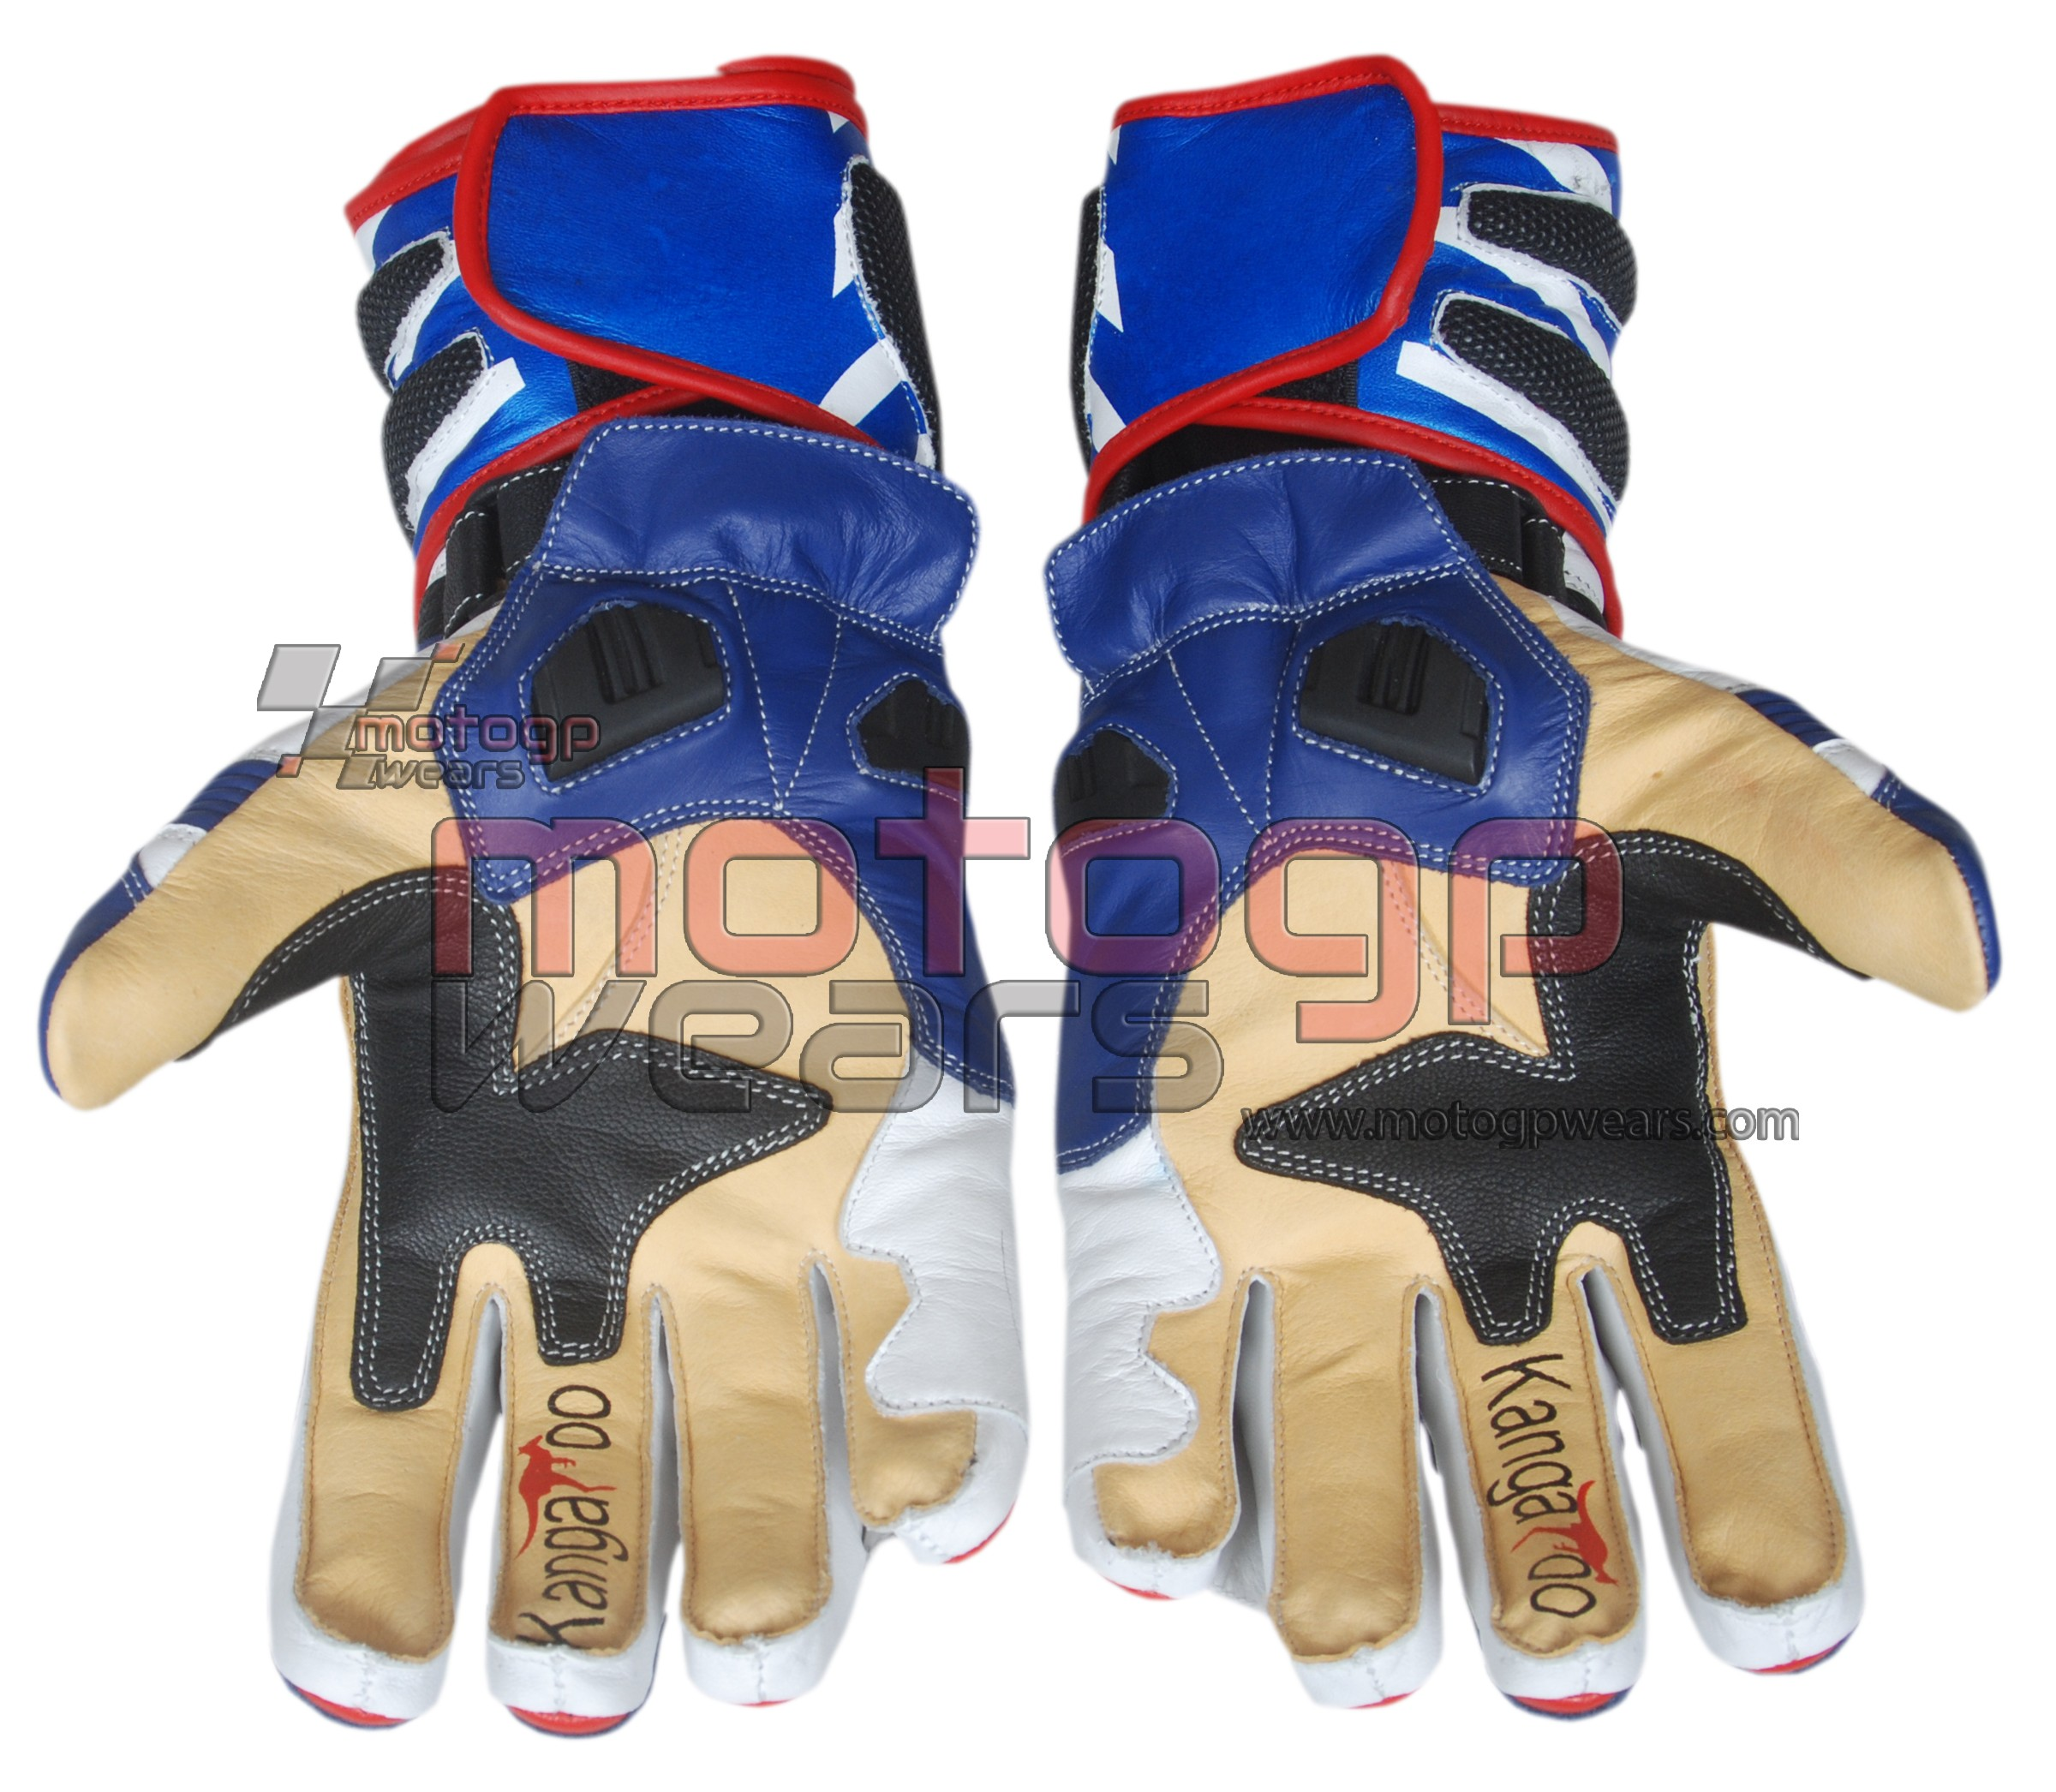 BMW Motorrad Motorbike Racing Leather Gloves Motogp Available in All Sizes